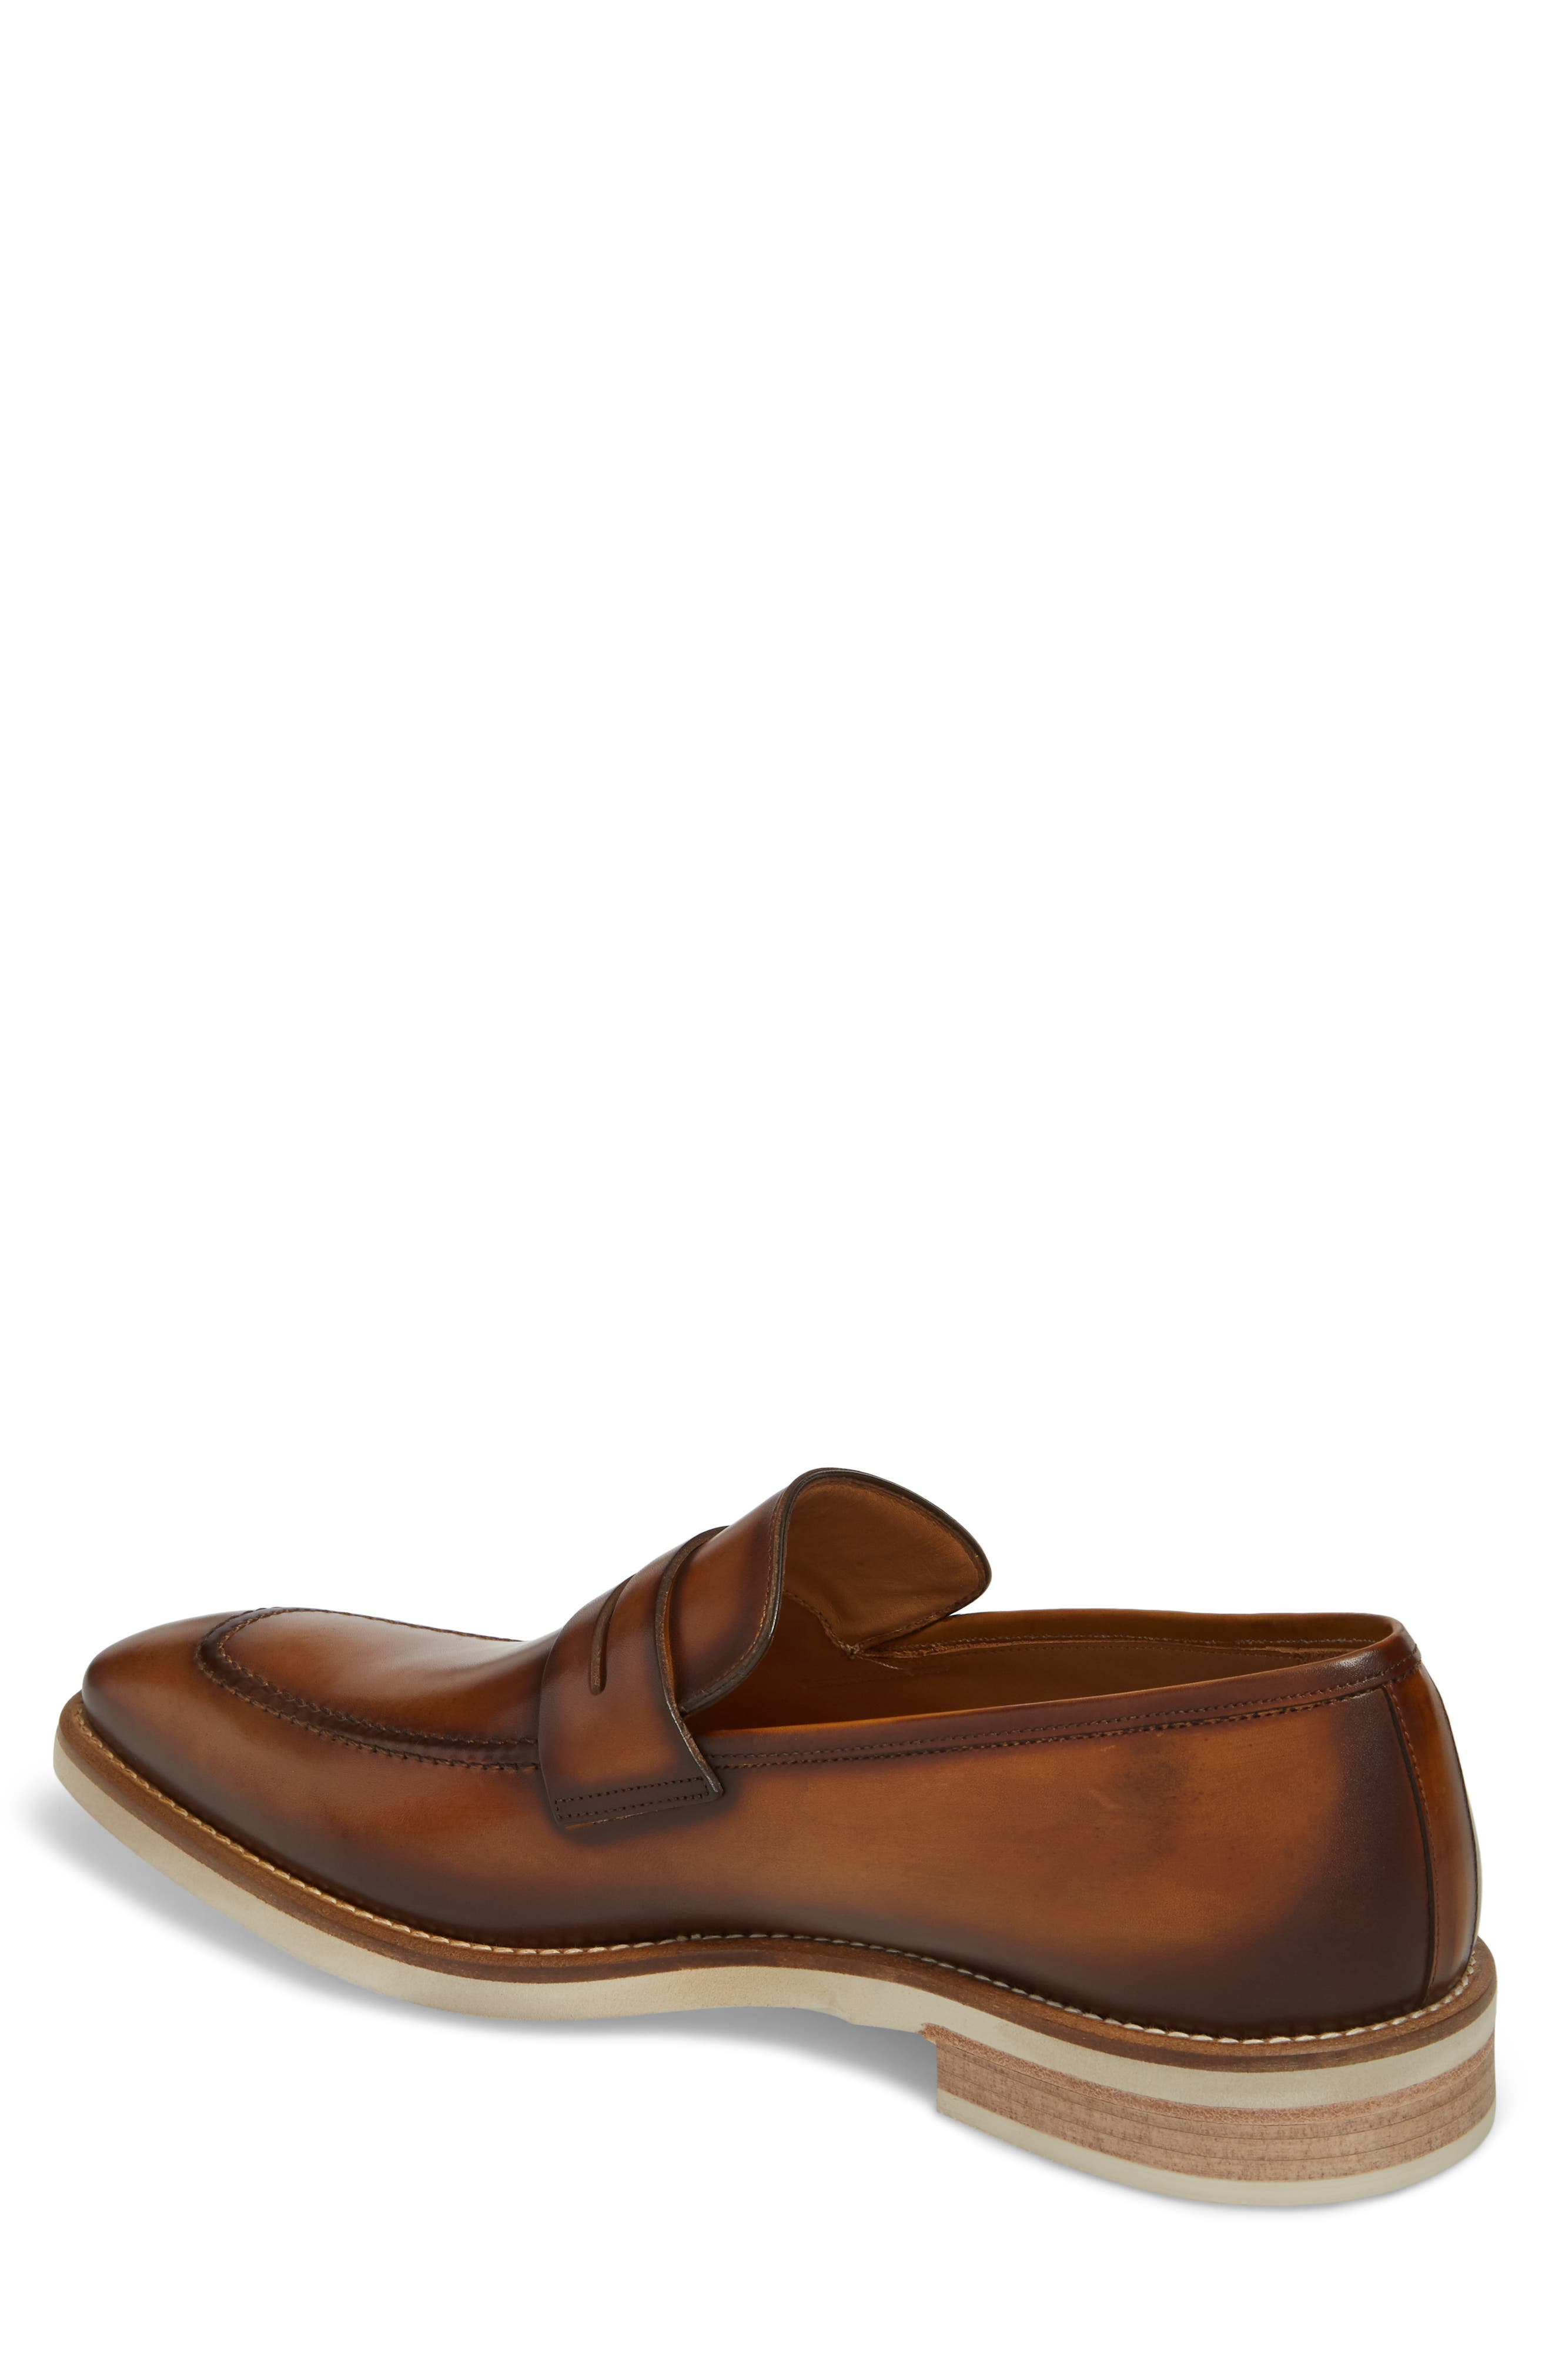 Castor Apron Toe Penny Loafer,                             Alternate thumbnail 2, color,                             Honey Leather